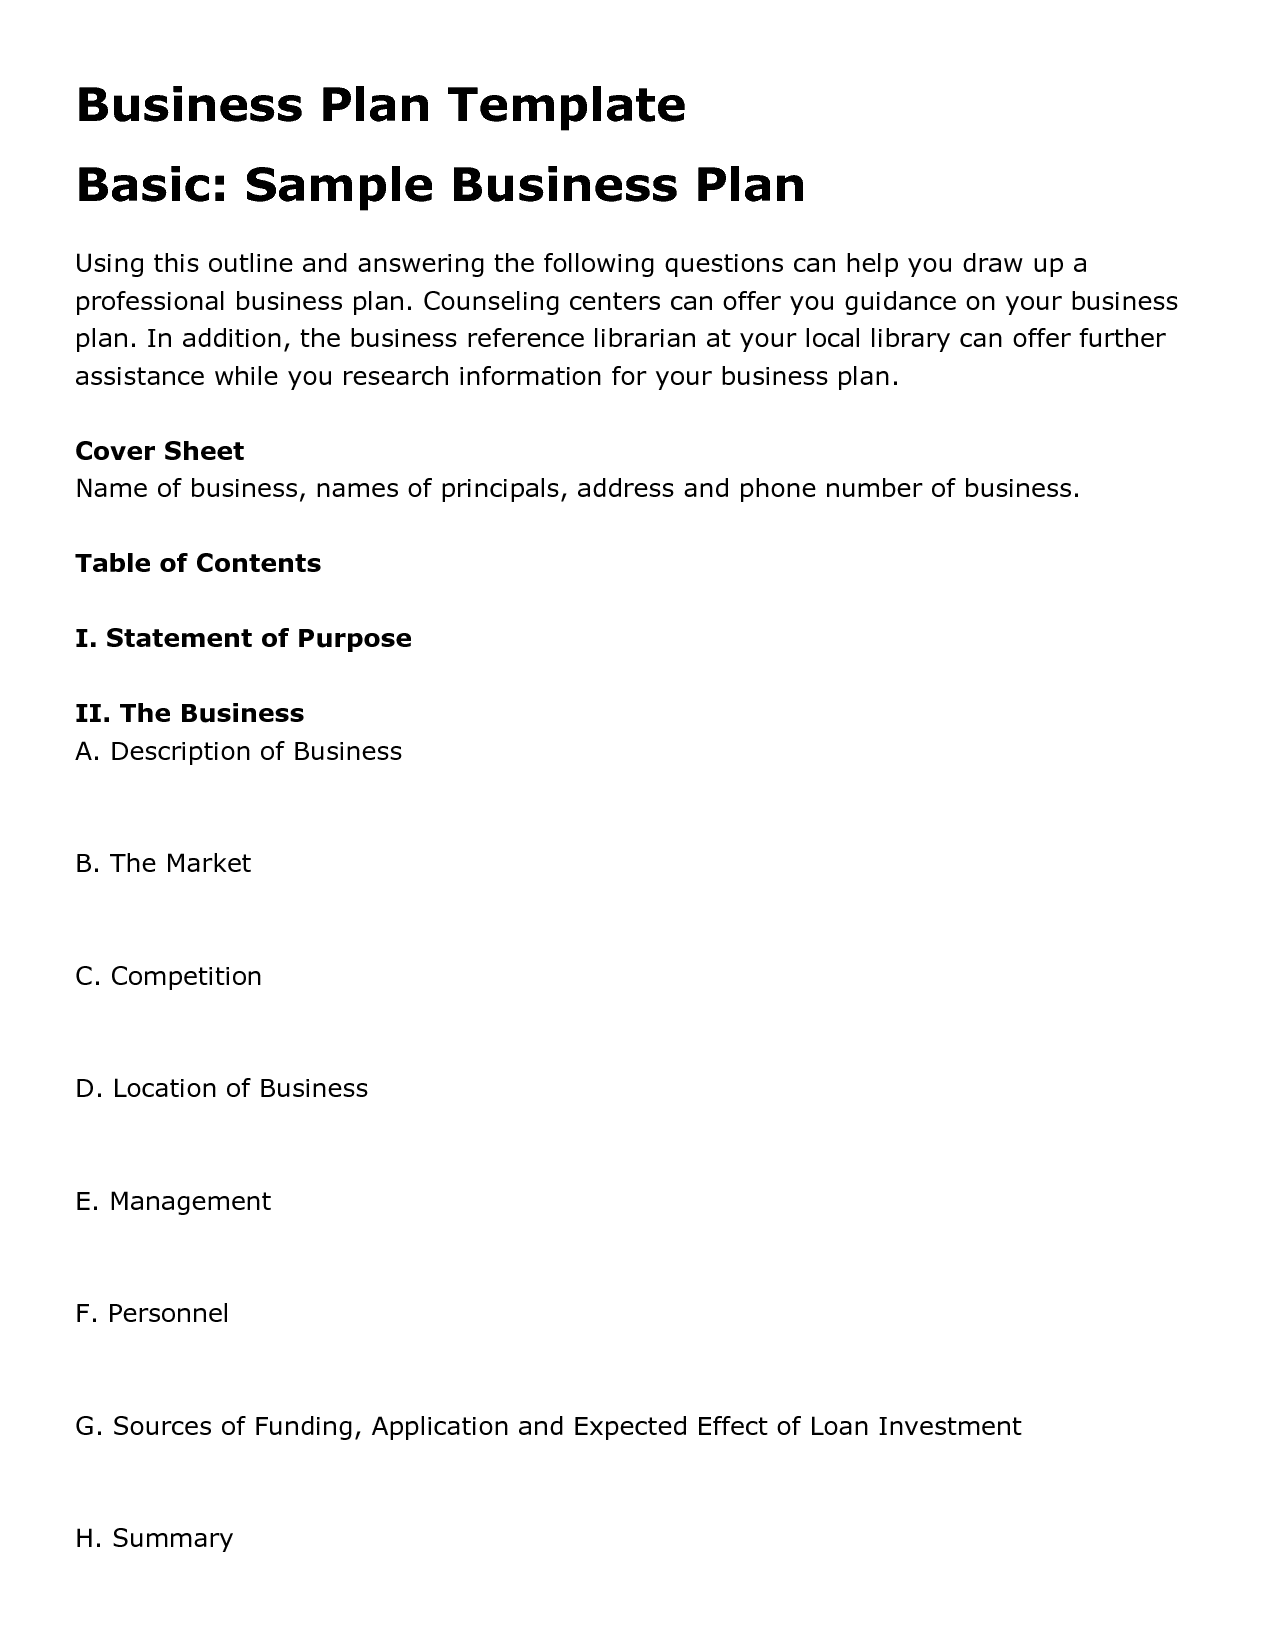 Free Worksheets home daycare tax worksheet : Free Printable Business Plan Template Form (GENERIC)